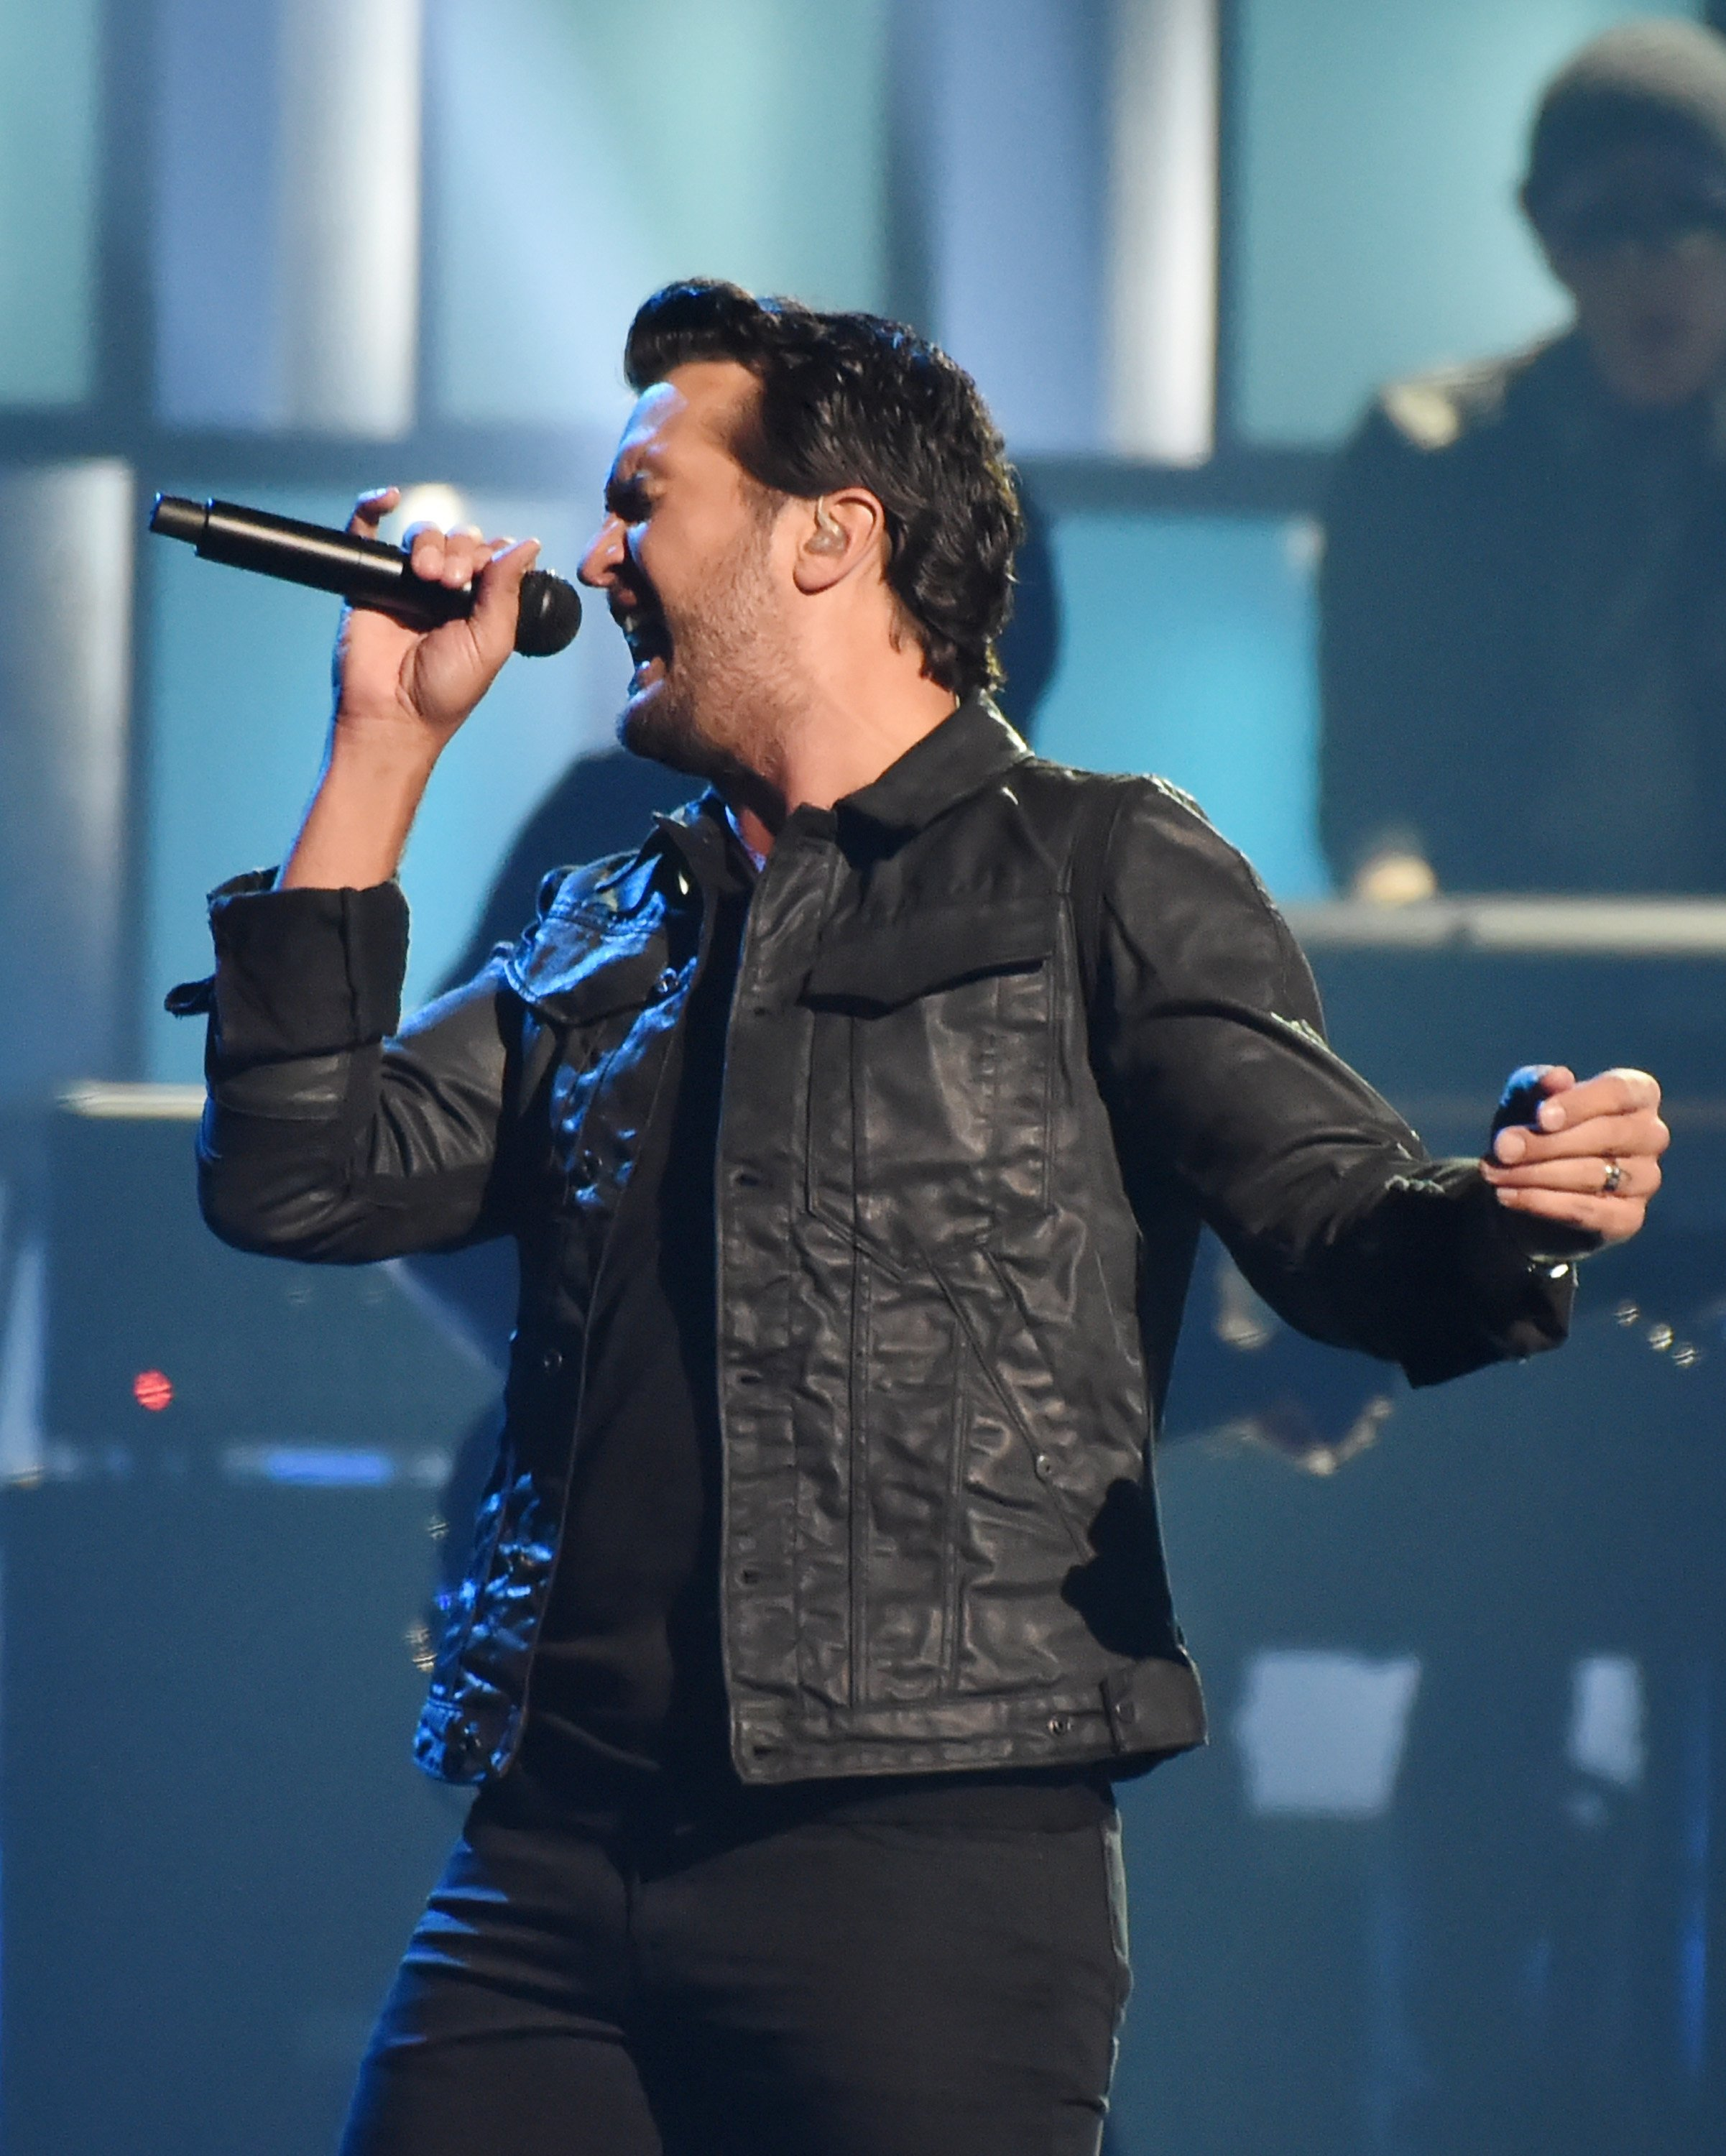 Luke Bryan performs onstage at the 51st annual CMA Awards at the Bridgestone Arena on November 8, 2017 | Photo: Getty Images